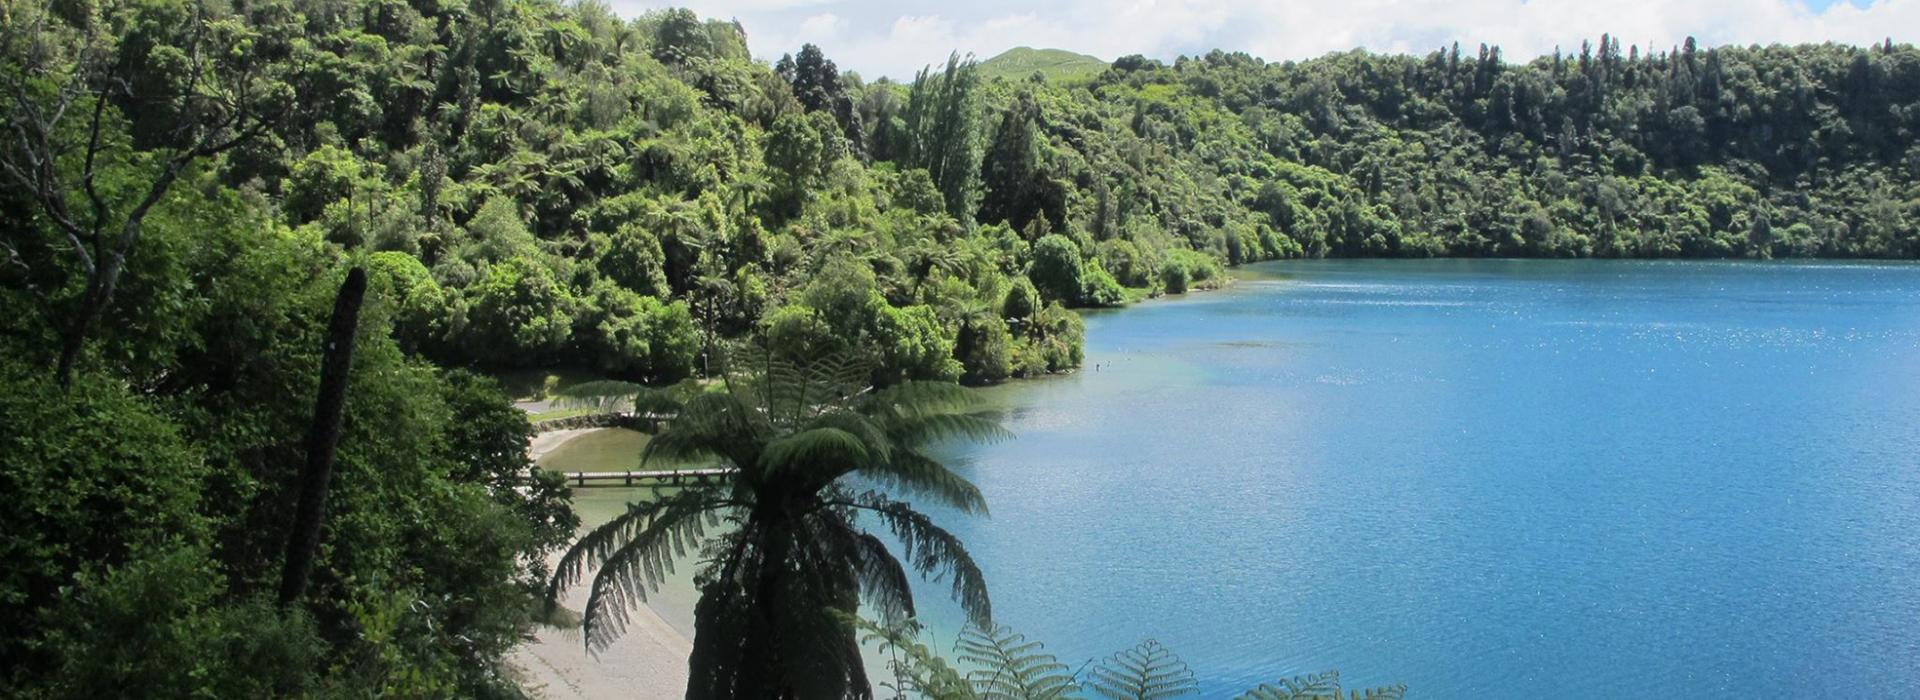 Blue Lake & Surrounding Bush, Rotorua, New Zealand